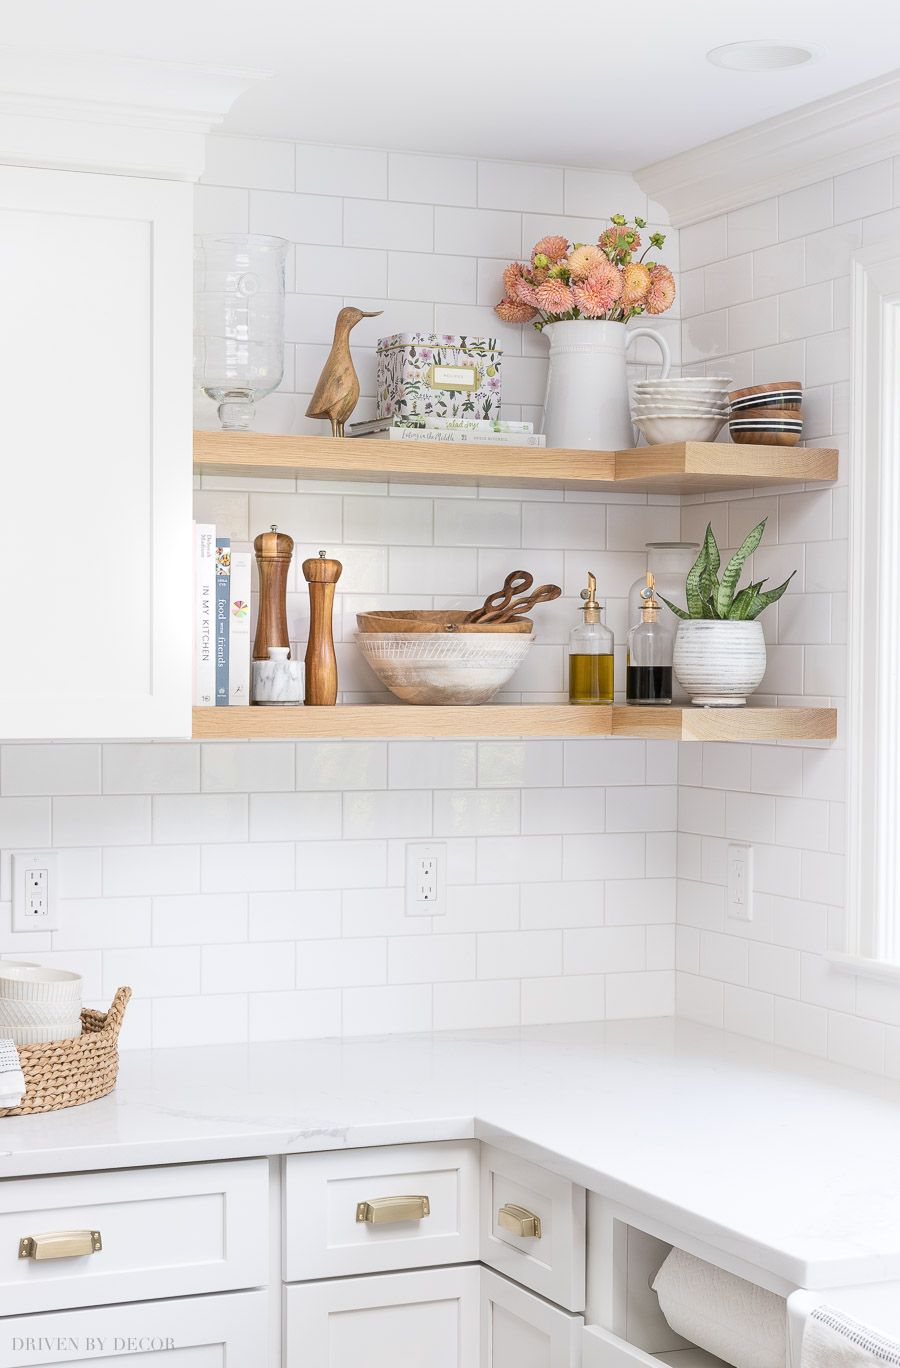 Totally stealing ideas for what to put on my open kitchen shelving ...